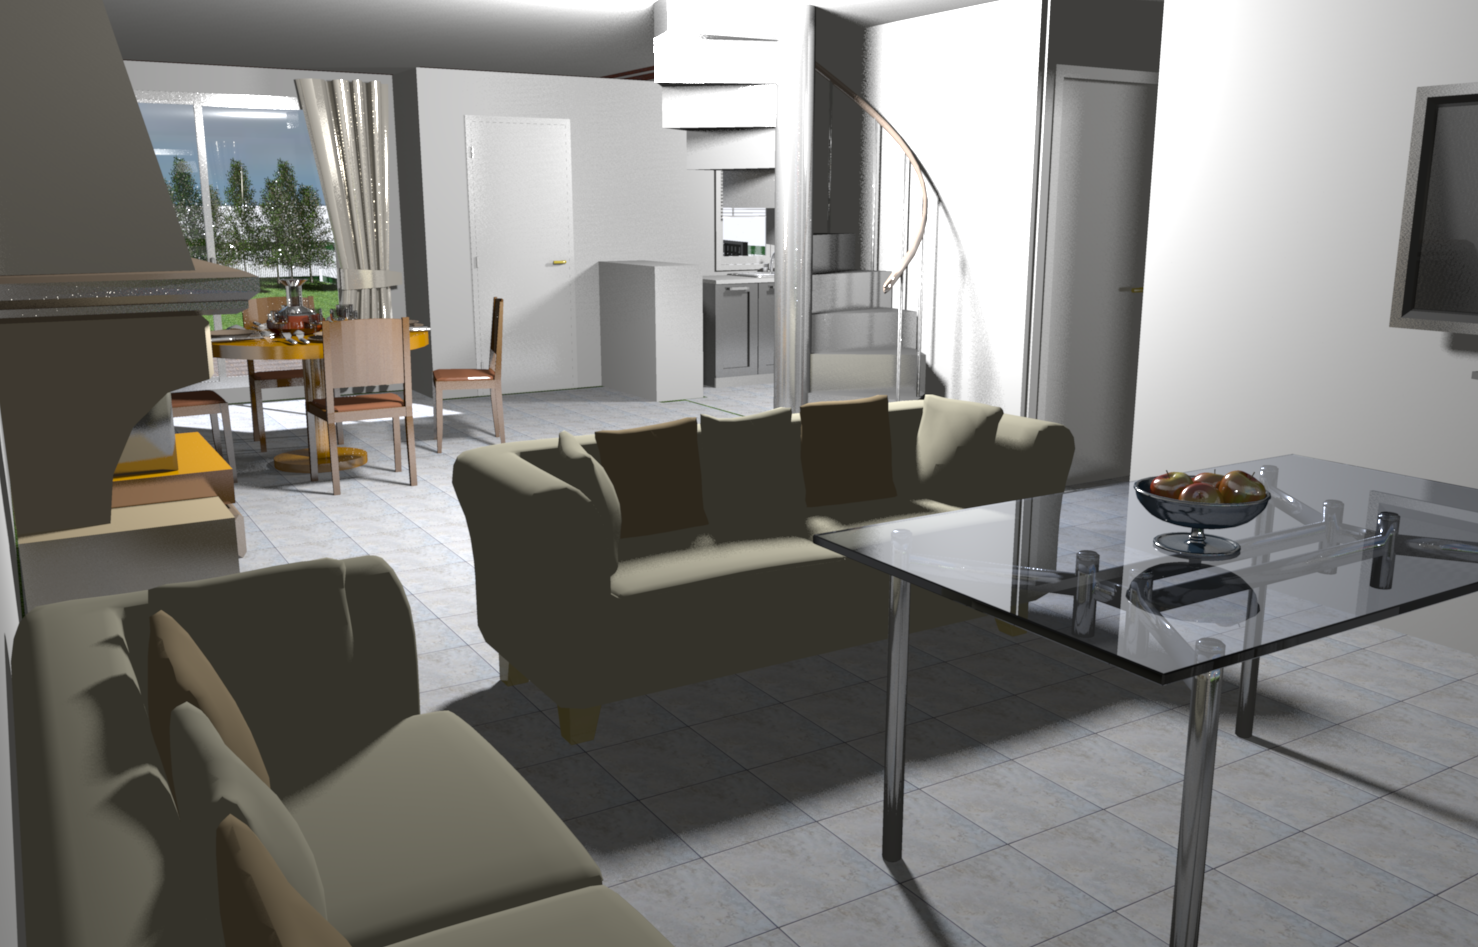 Libr change archive du blog dessiner sa maison en 3d sweet home 3d - Dessiner sa maison en 3d ...